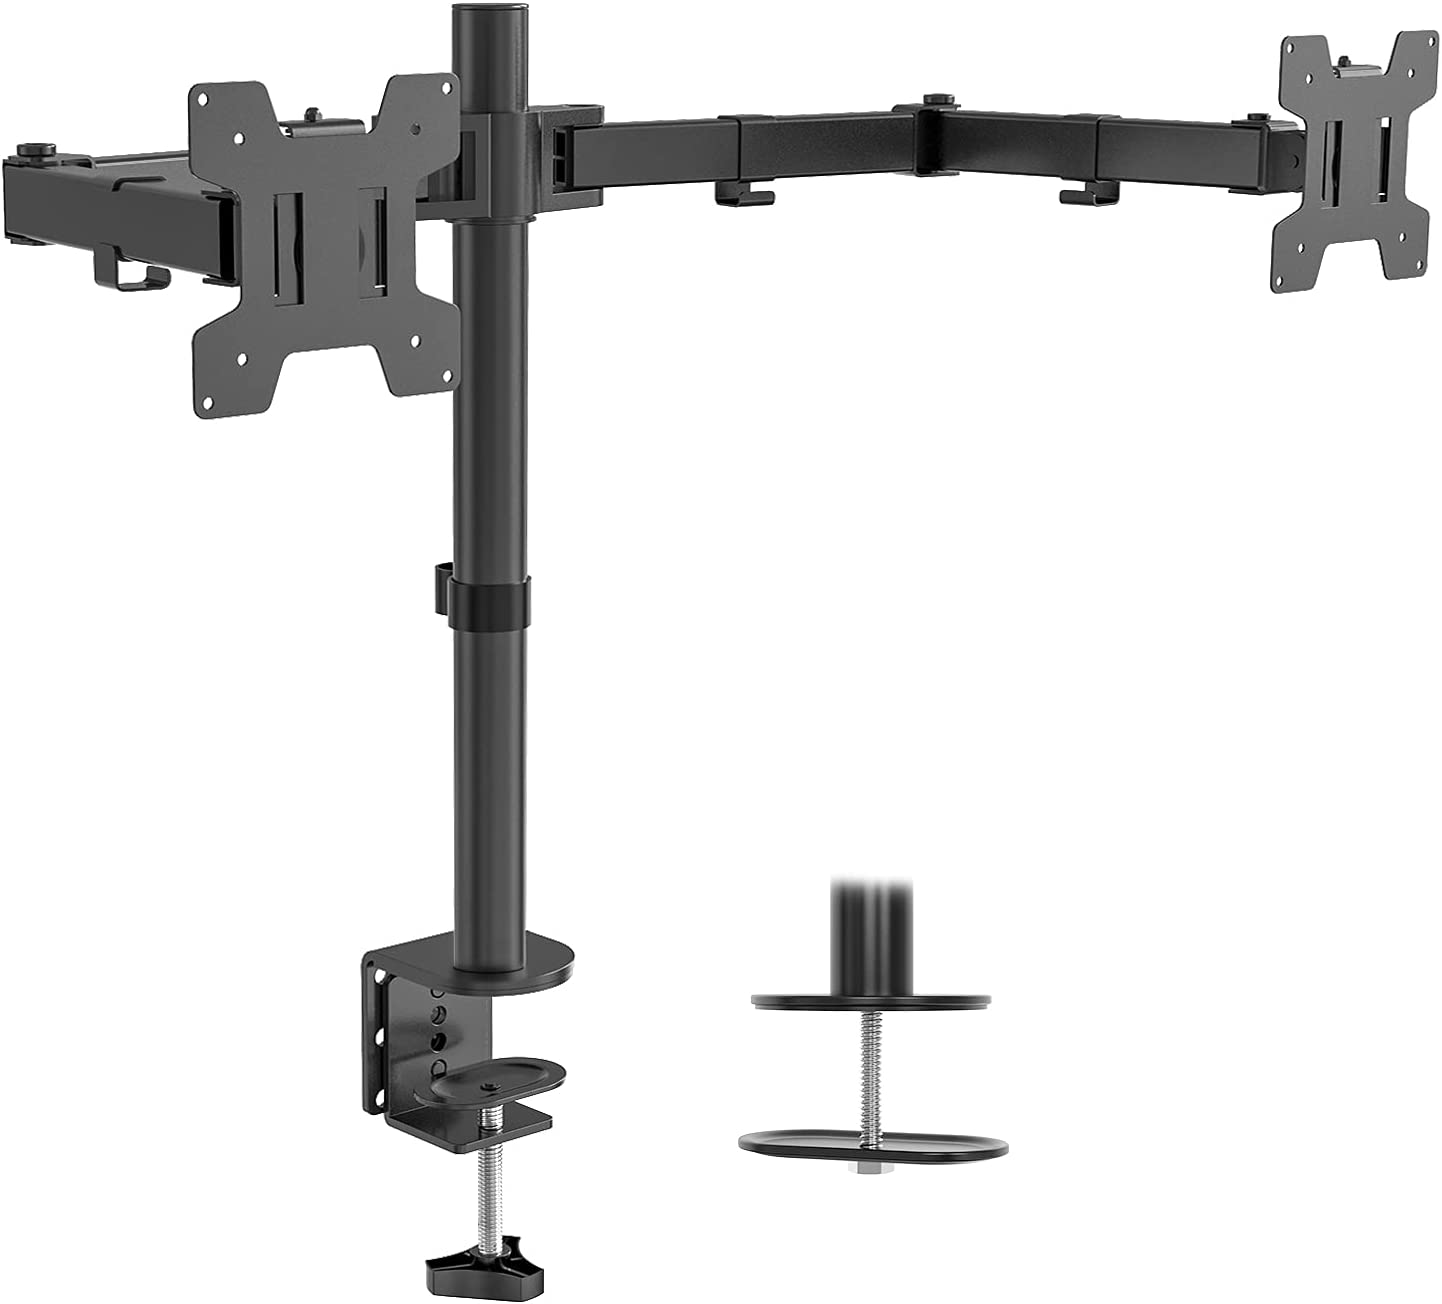 """WALI Universal Dual LCD Monitor  27"""" Desk Mount Stand $13.99 Coupon"""